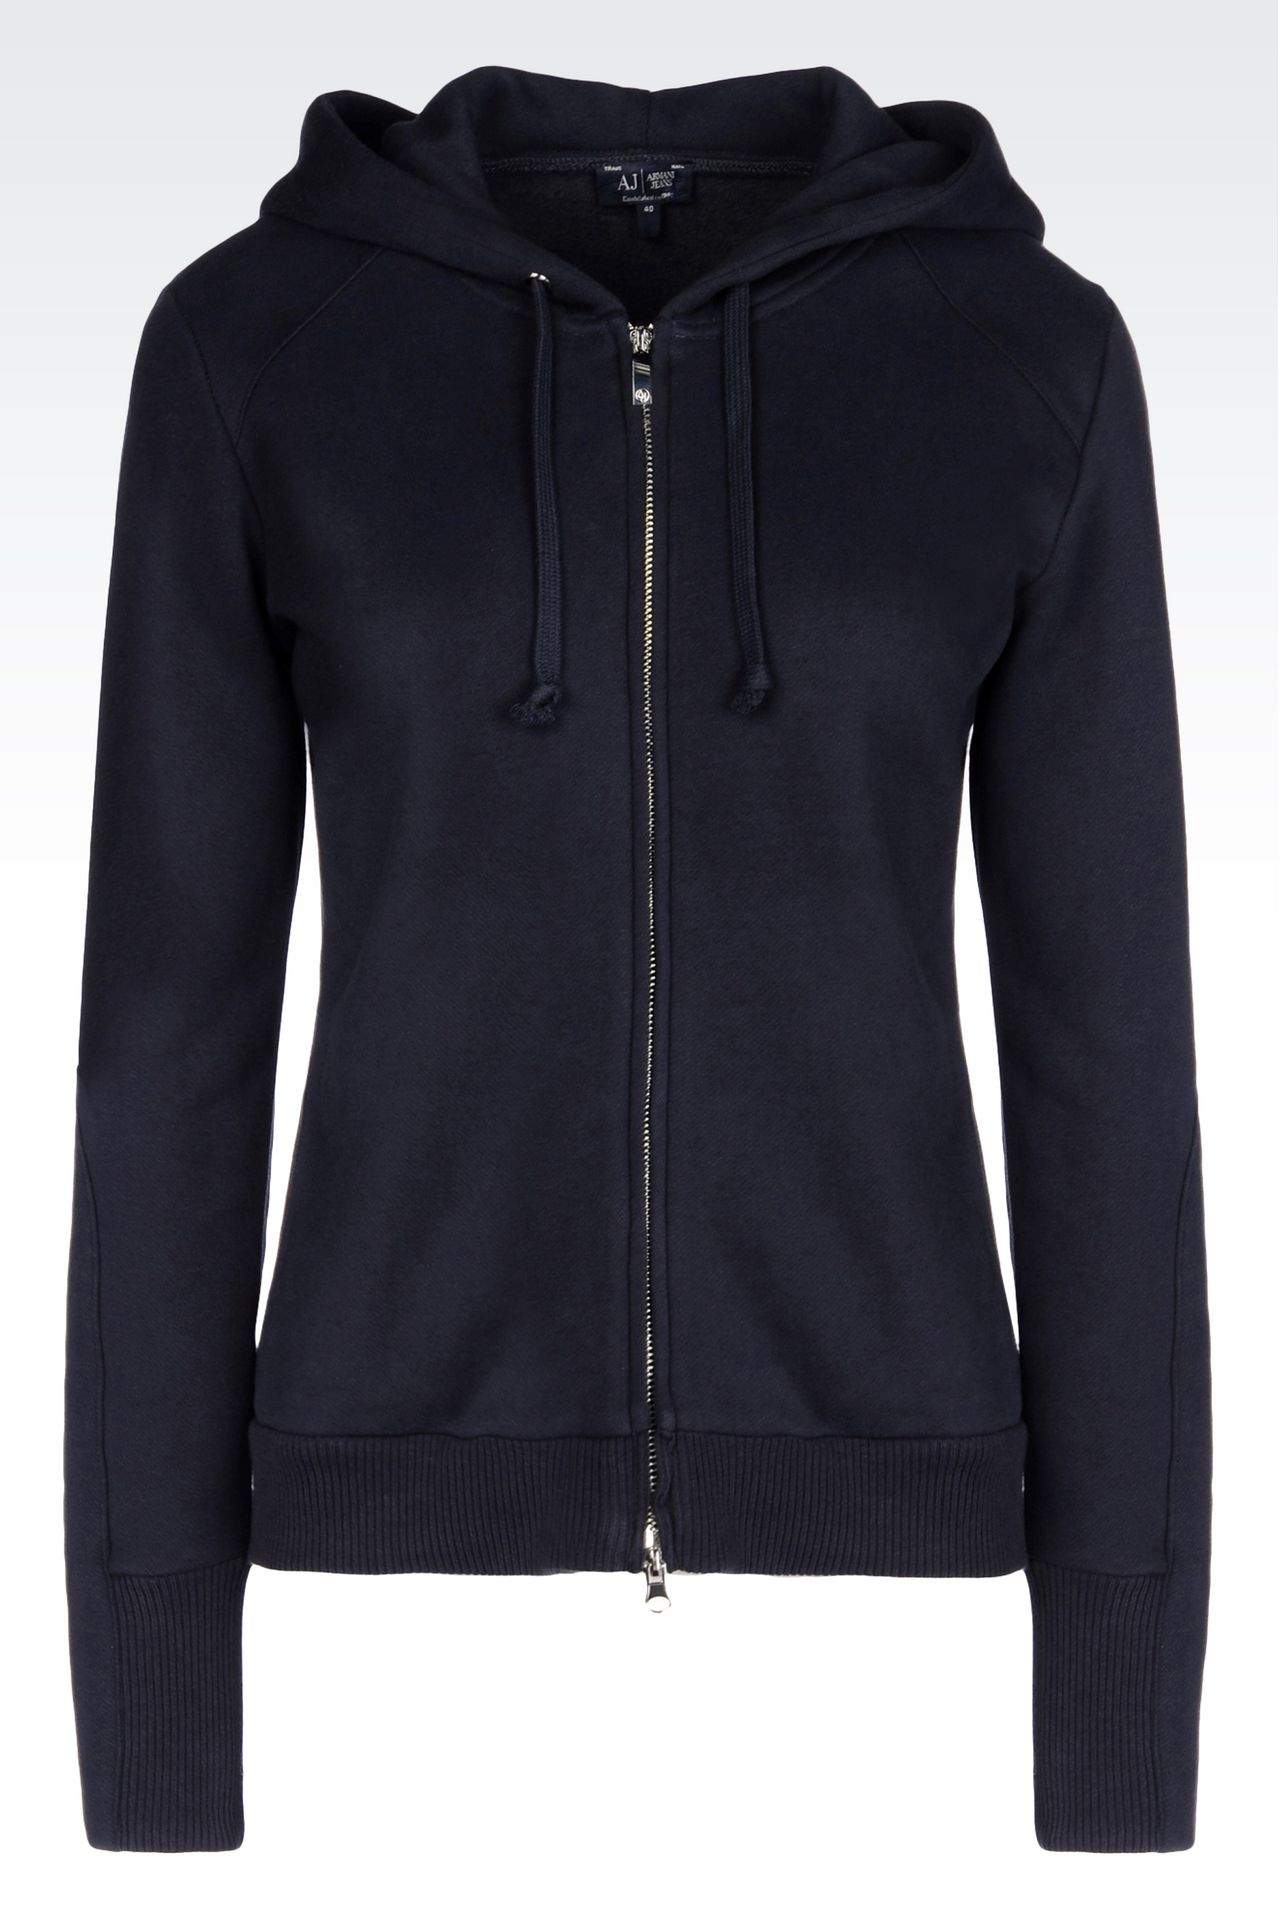 FULL ZIP HOODED SWEATSHIRT IN NAPPED COTTON: Sweatshirts Women by Armani - 0